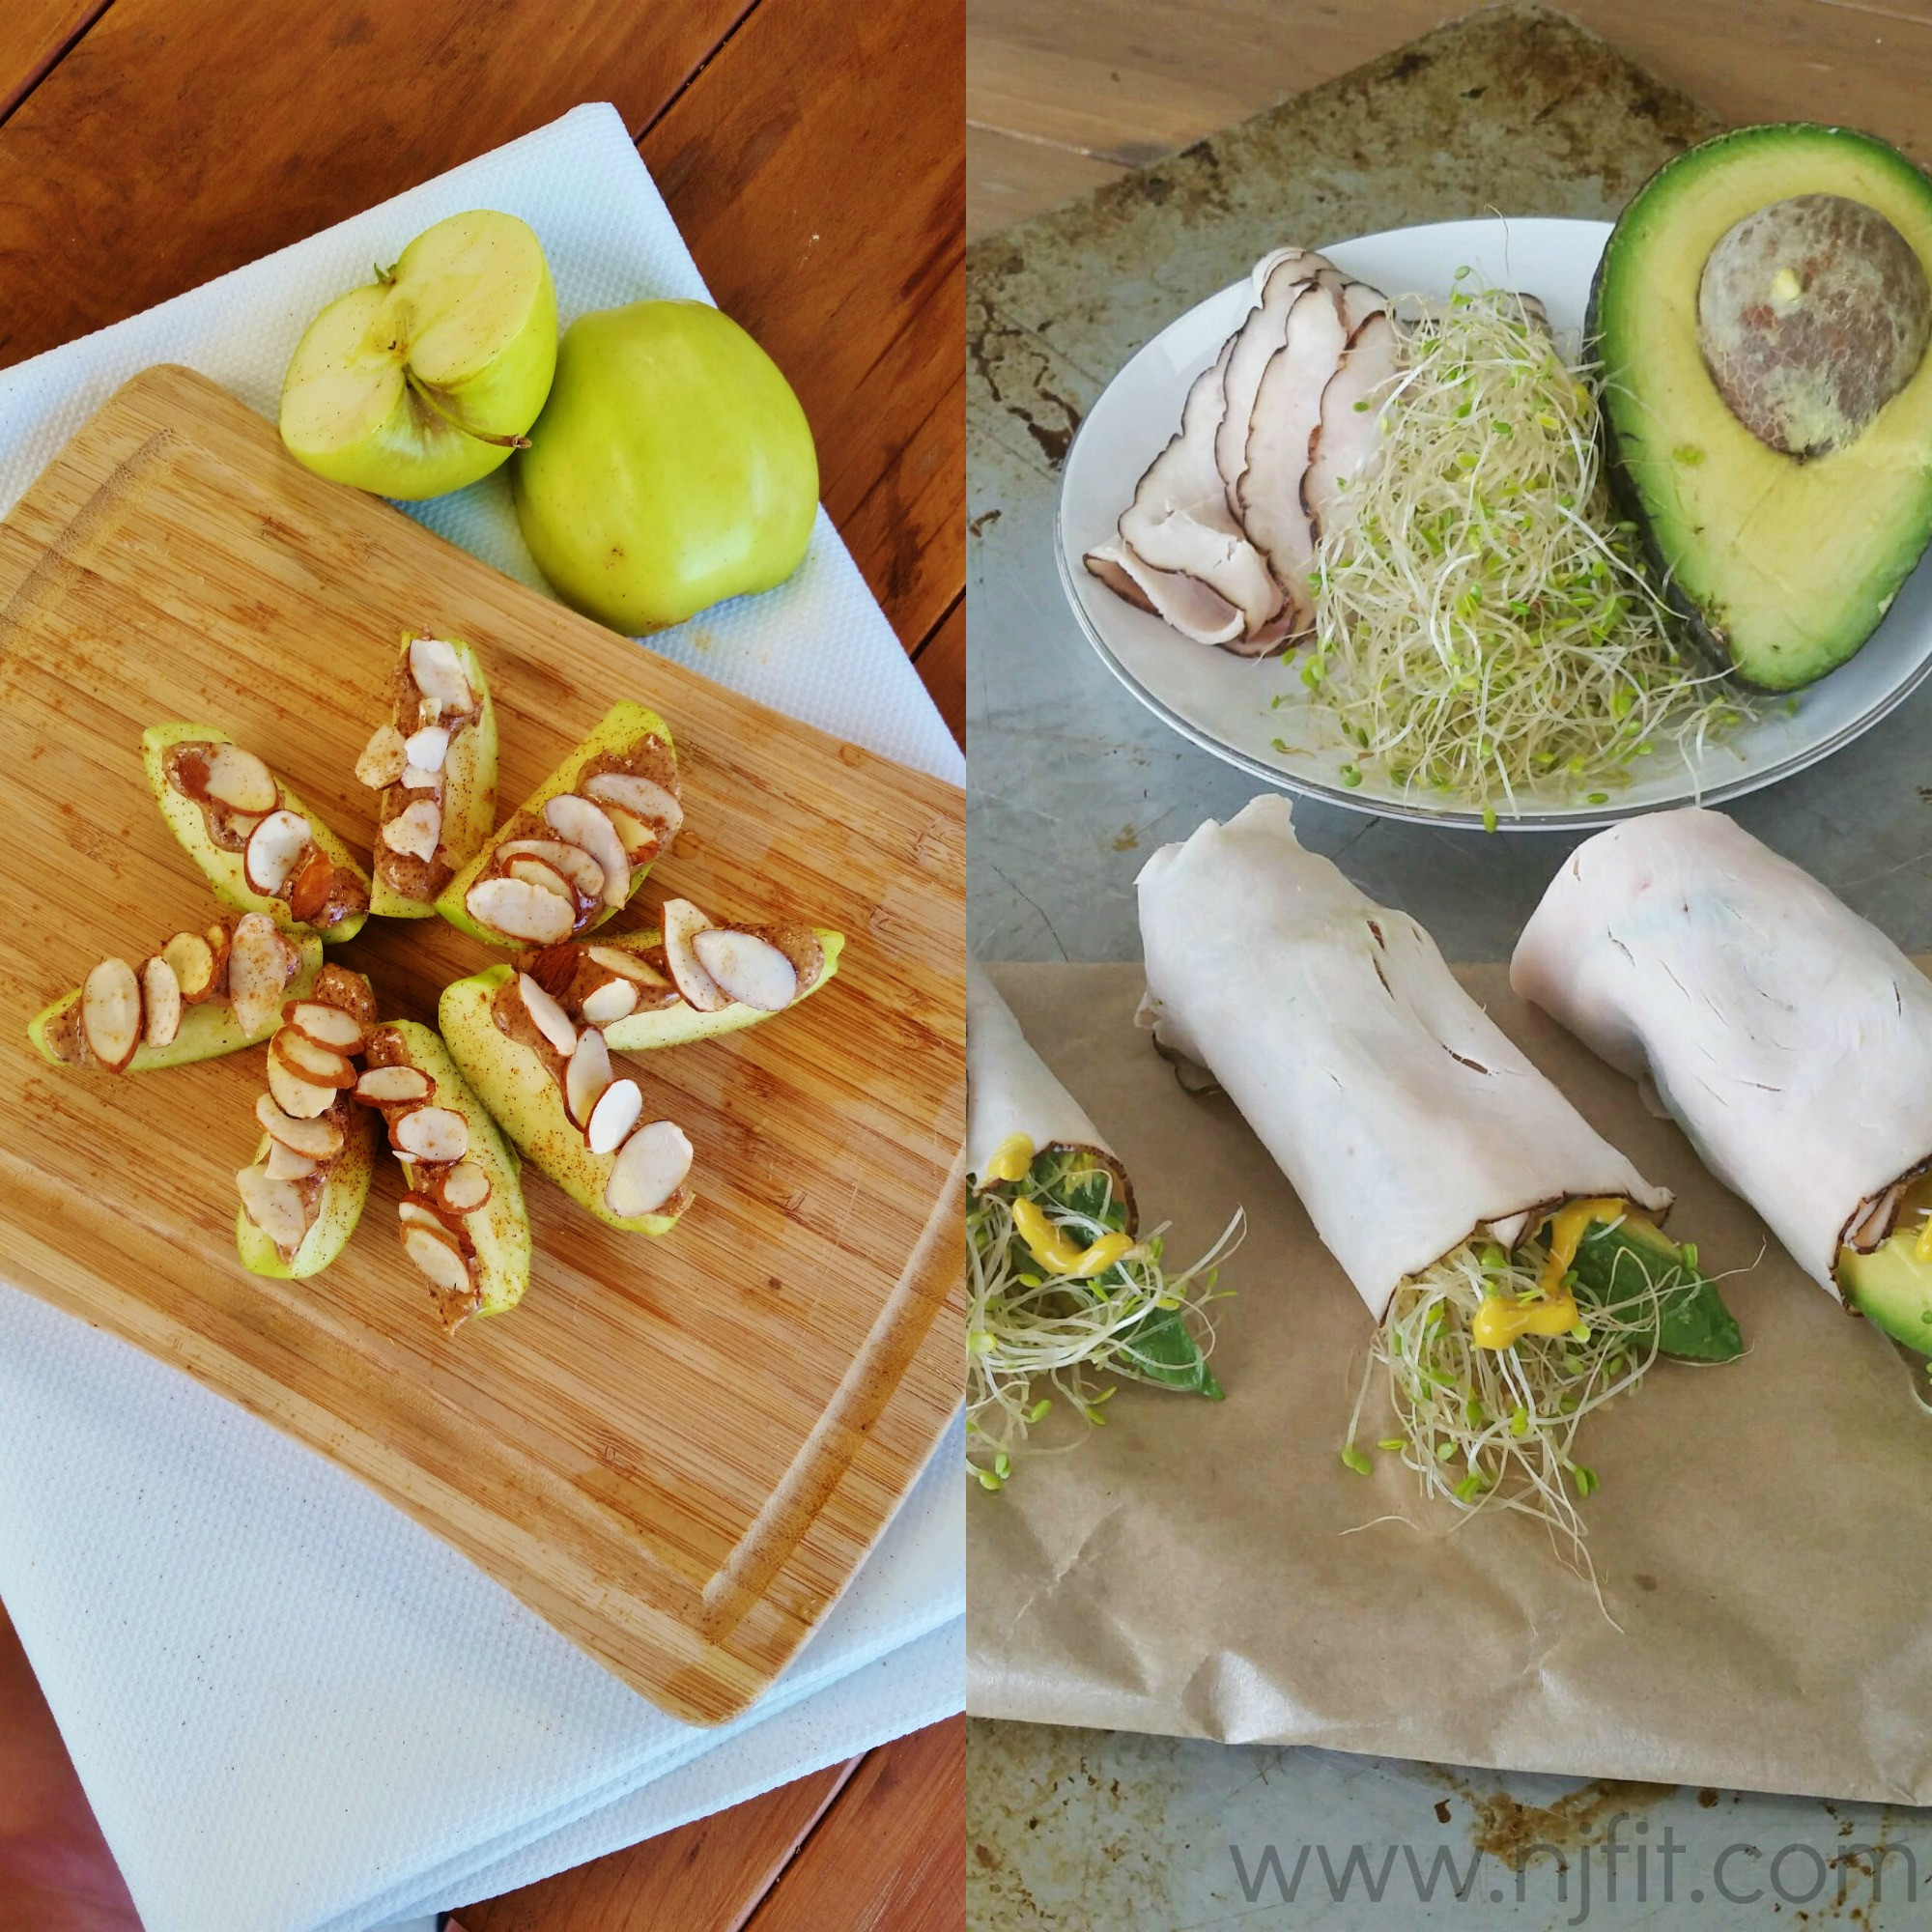 Healthy Foods And Snacks  Quick healthy snacks 2 Natalie Jill Fitness